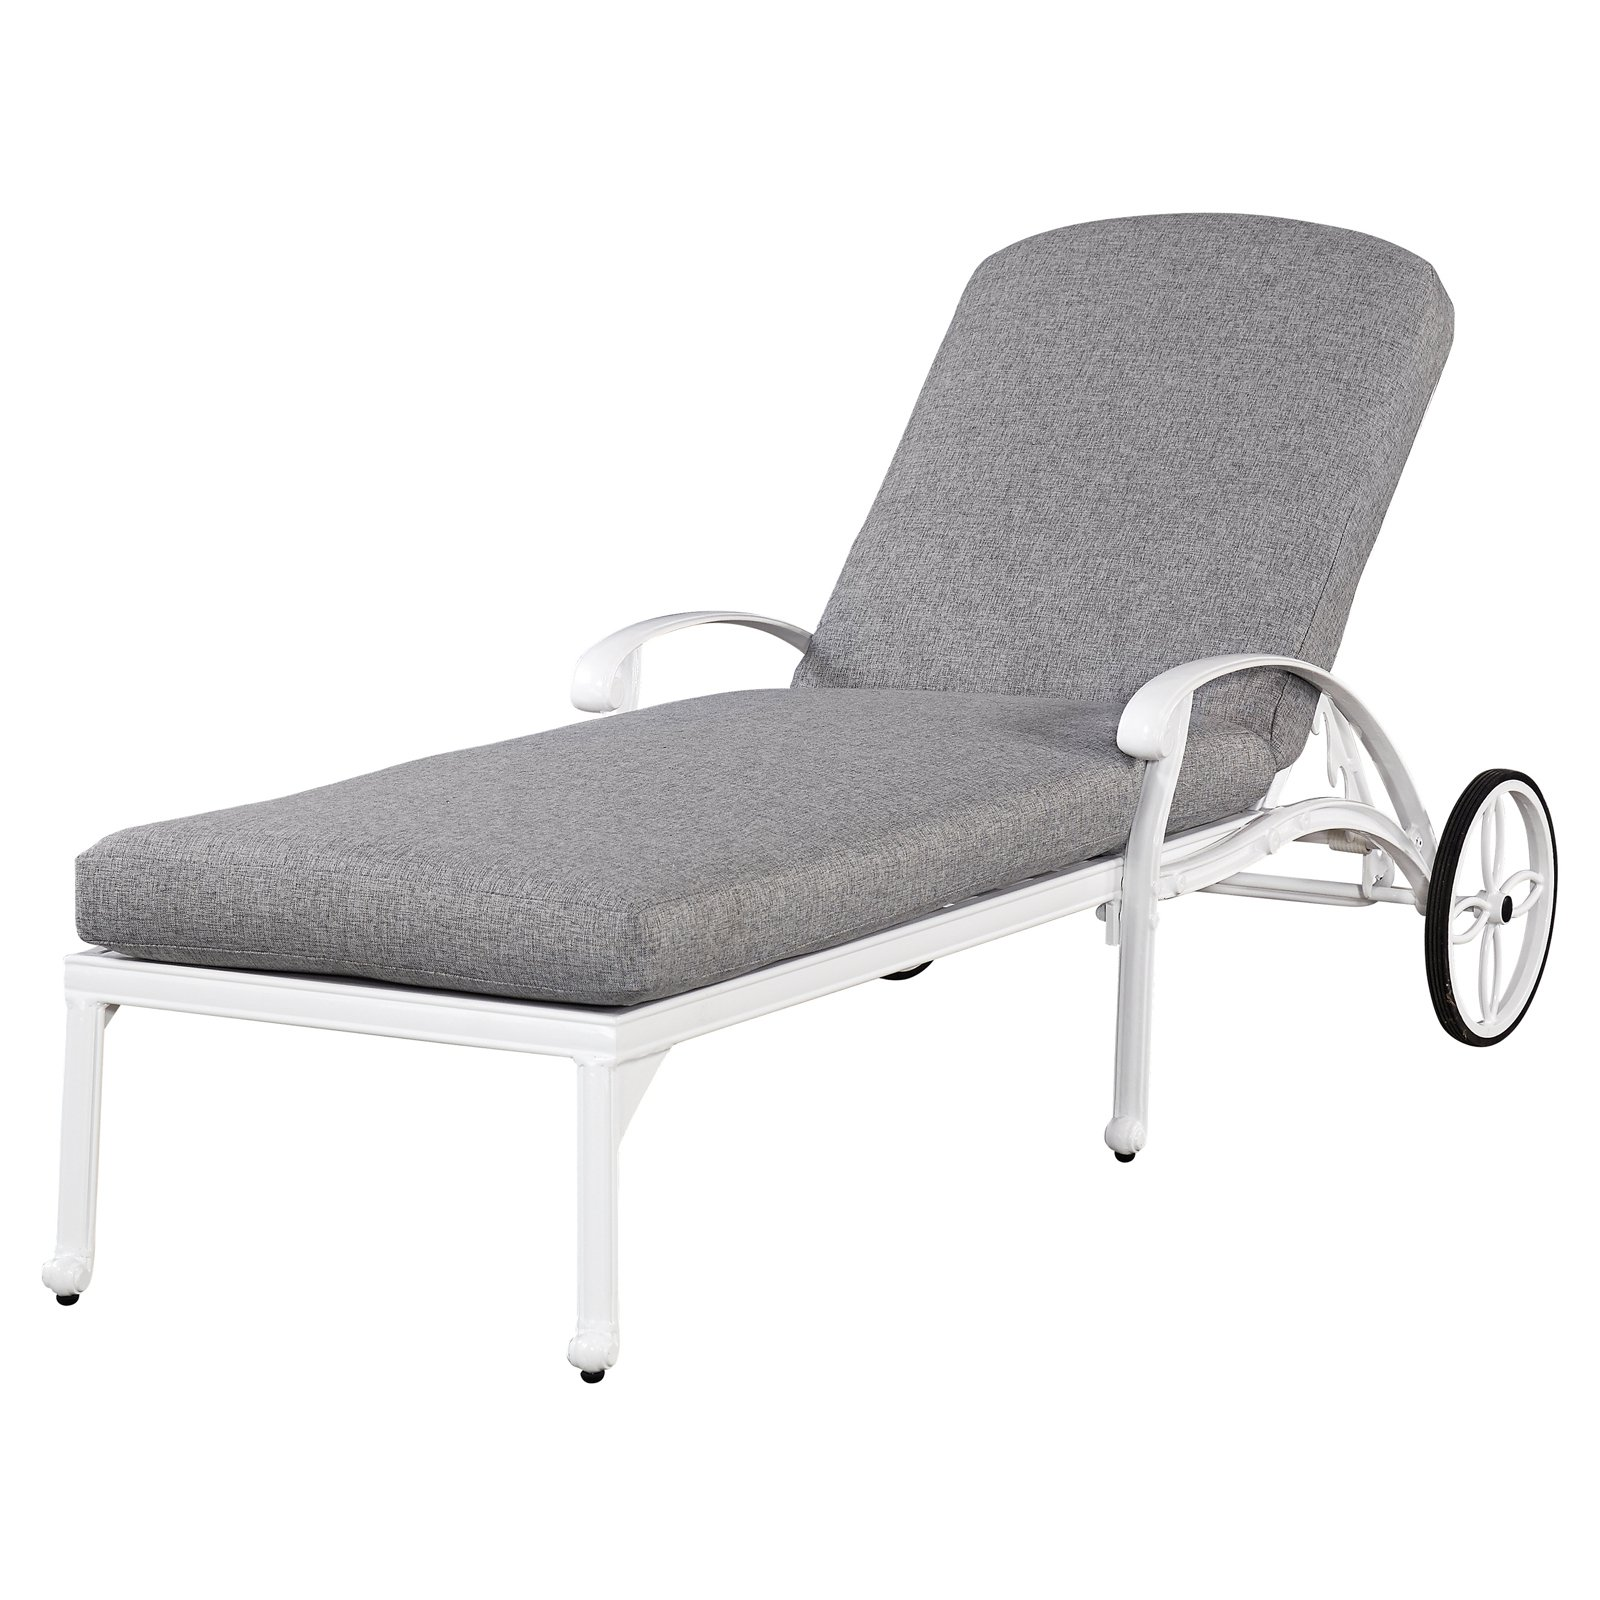 Home Styles Floral Blossom White Outdoor Chaise Lounge Chair With Cushion